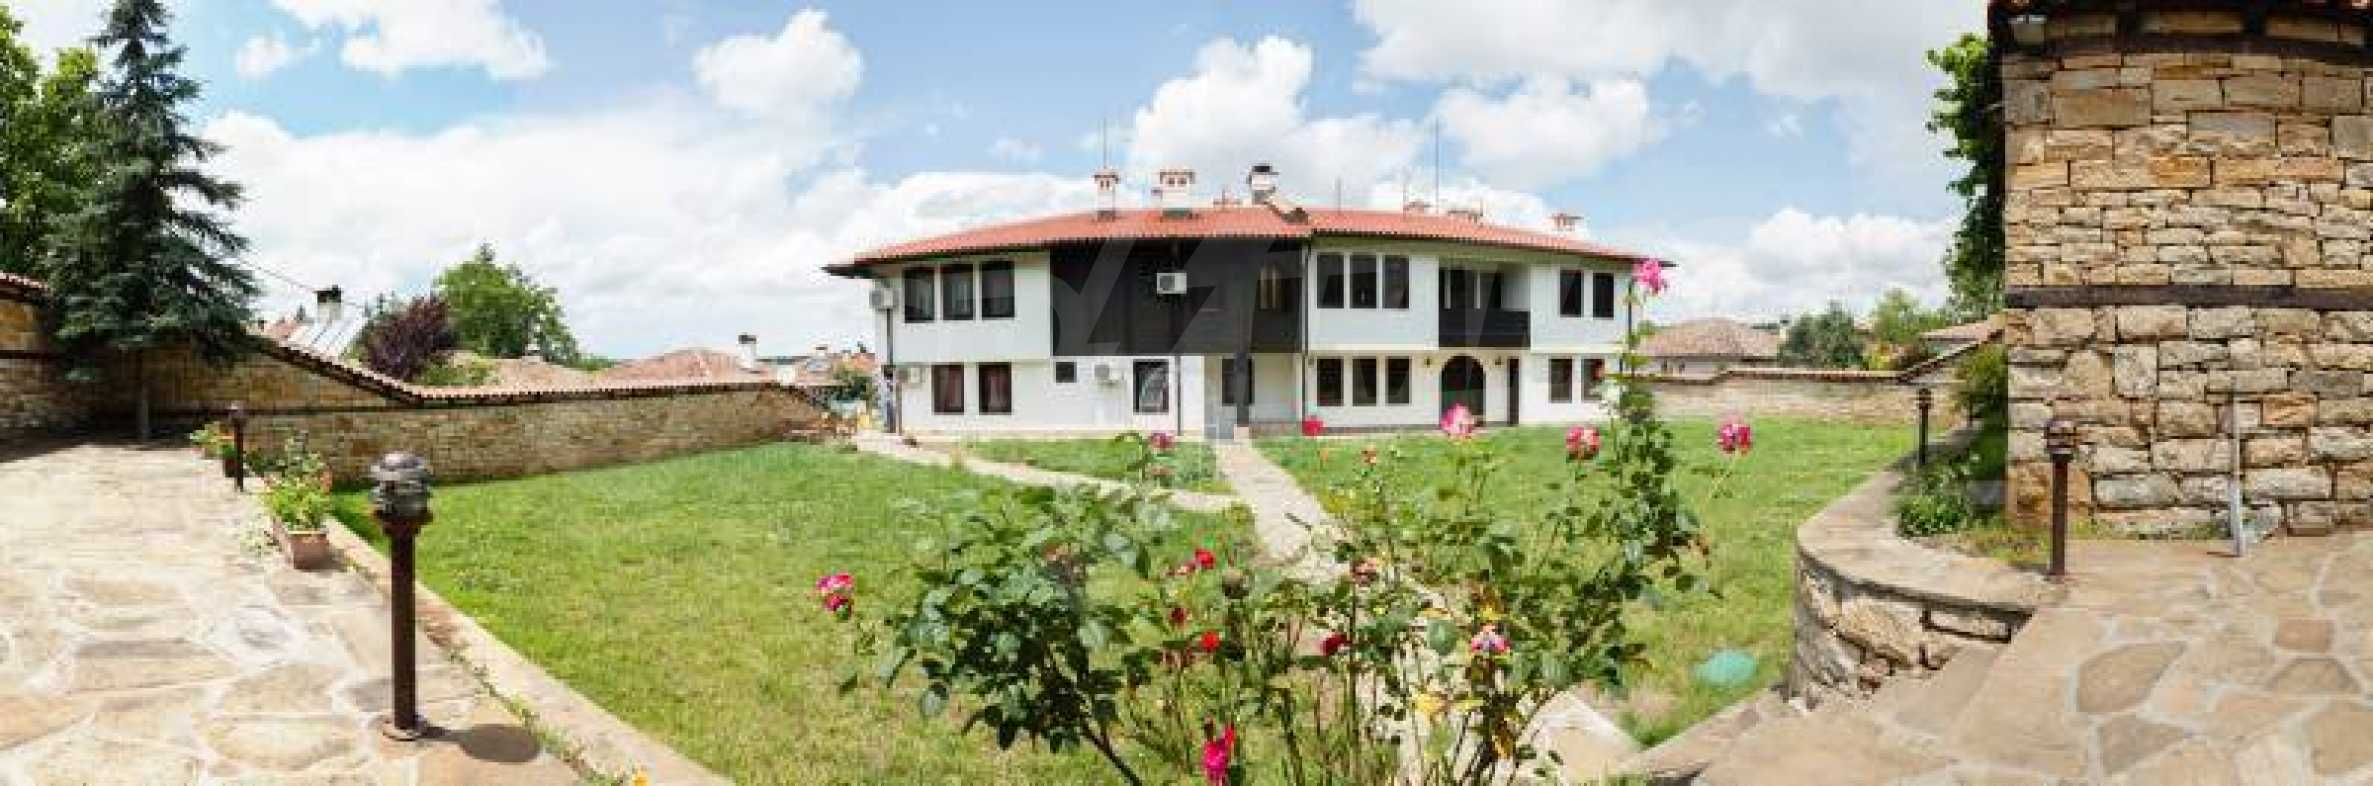 Fully equipped hotel, a restaurant, a house and a yard in the center of popular Arbanassi village 50